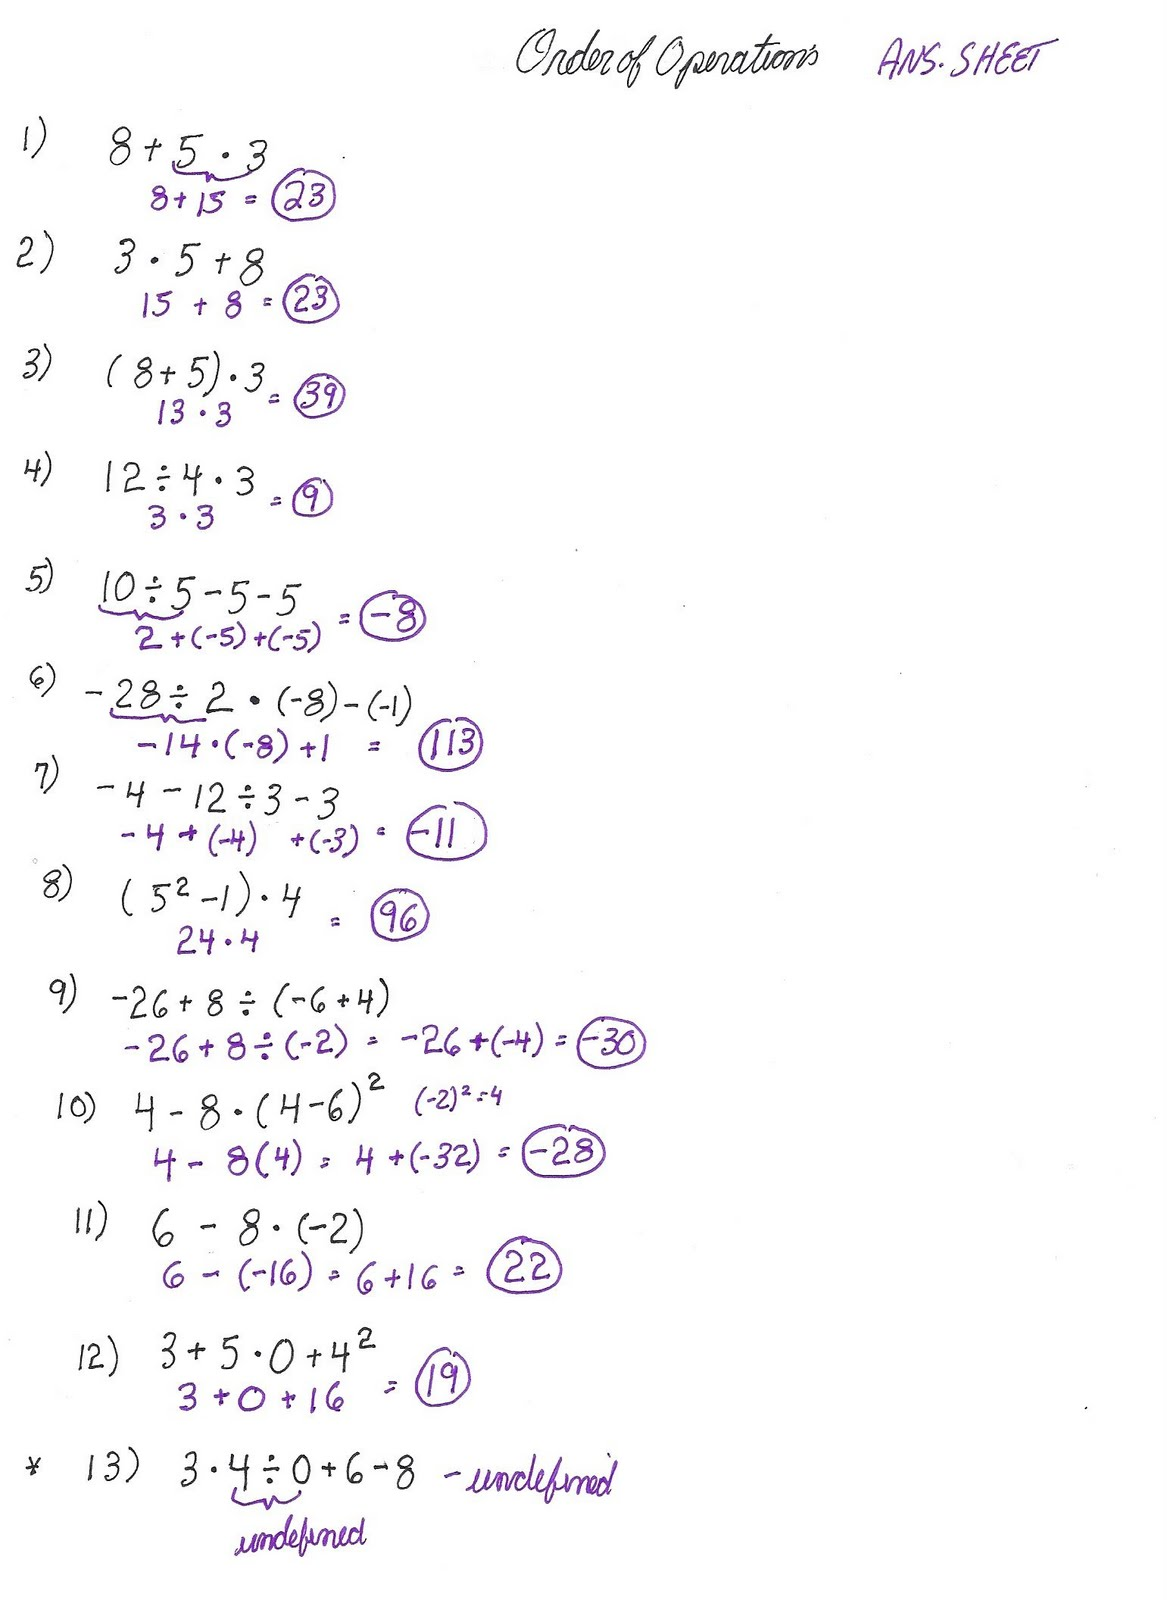 Cobb Adult Ed Math Order Of Operations Worksheet Solutions